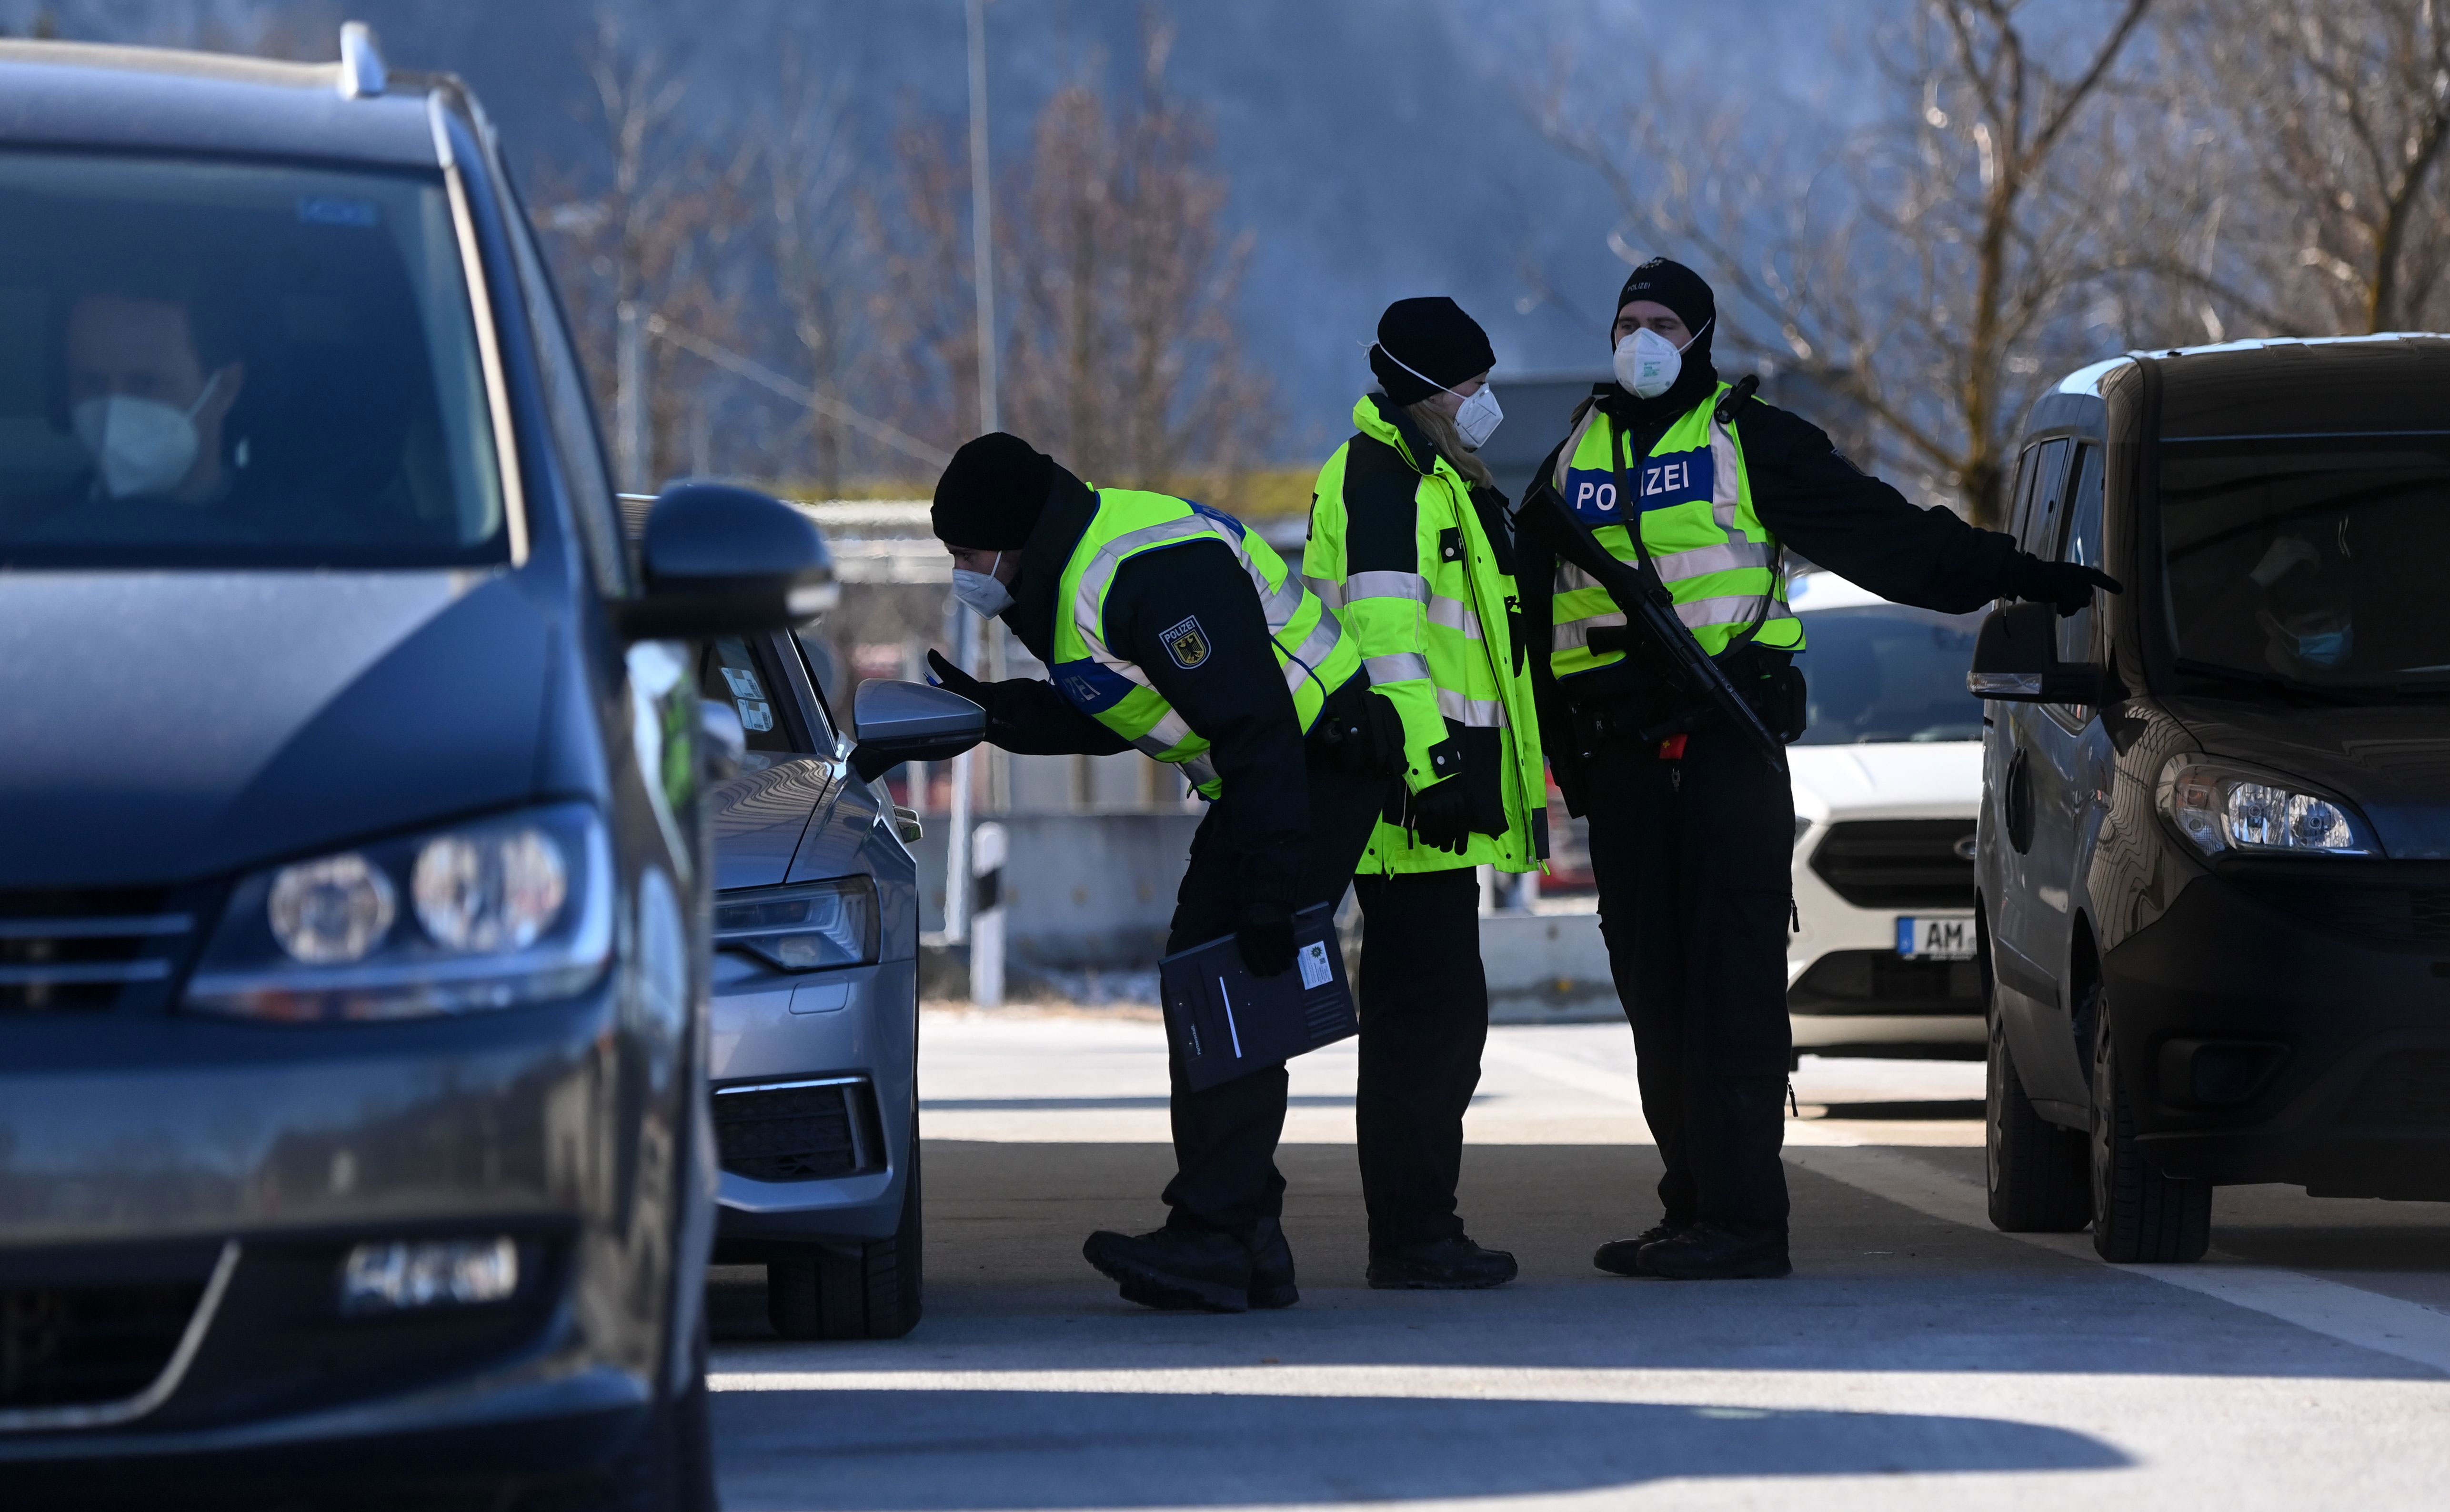 Federal Police officers check drivers at the border crossing between Austria and Germany, near Kiefersfelden, on February 14.